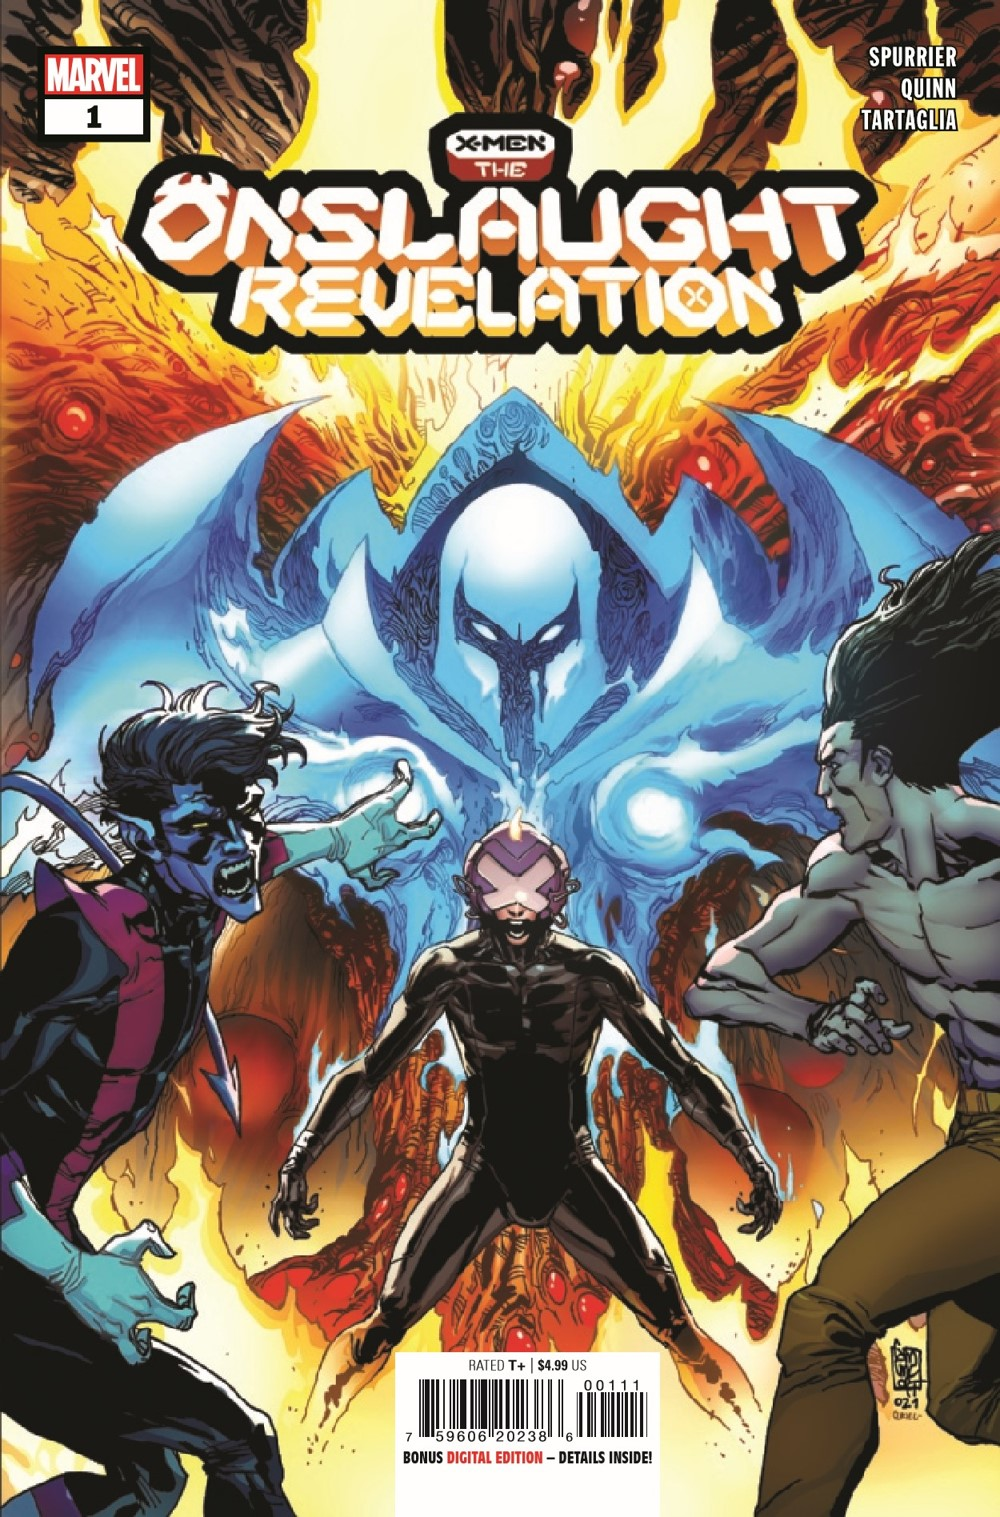 XMNONREVEL2021001_Preview-1 ComicList Previews: X-MEN THE ONSLAUGHT REVELATION #1